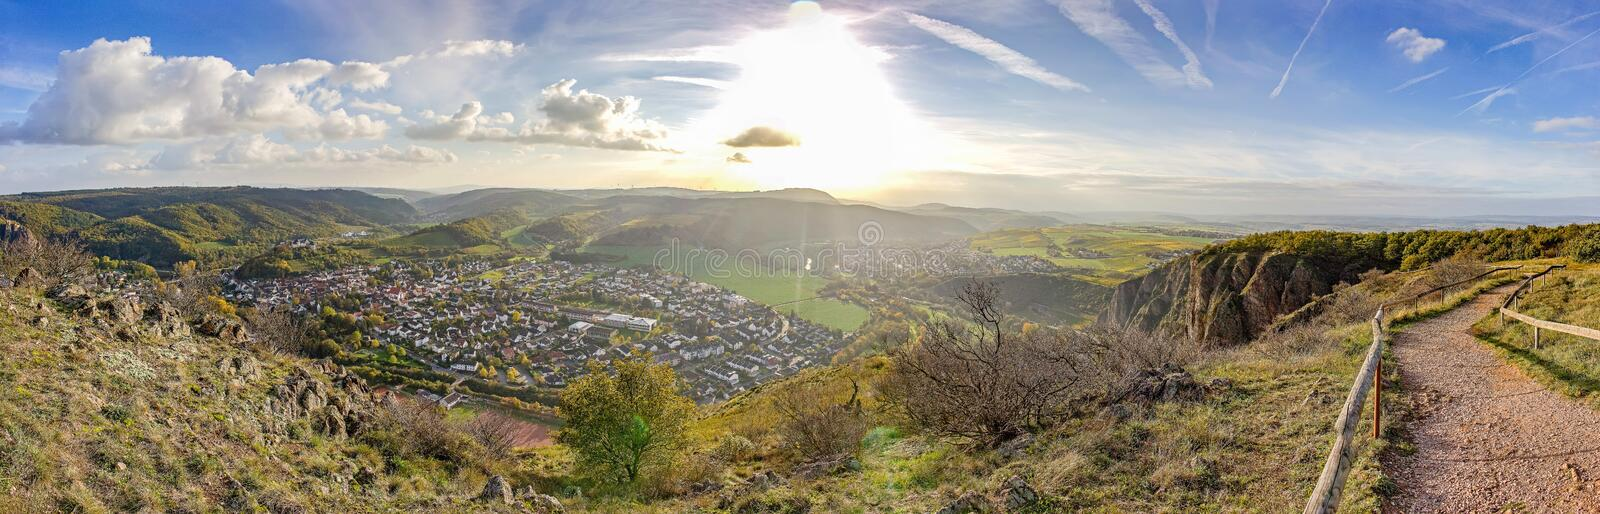 Panorama photo of the setting sun from mountaintop in Bad Münster am Stein, Germany - small. Panorama photo of the setting sun from mountaintop in Bad Mü royalty free stock photography